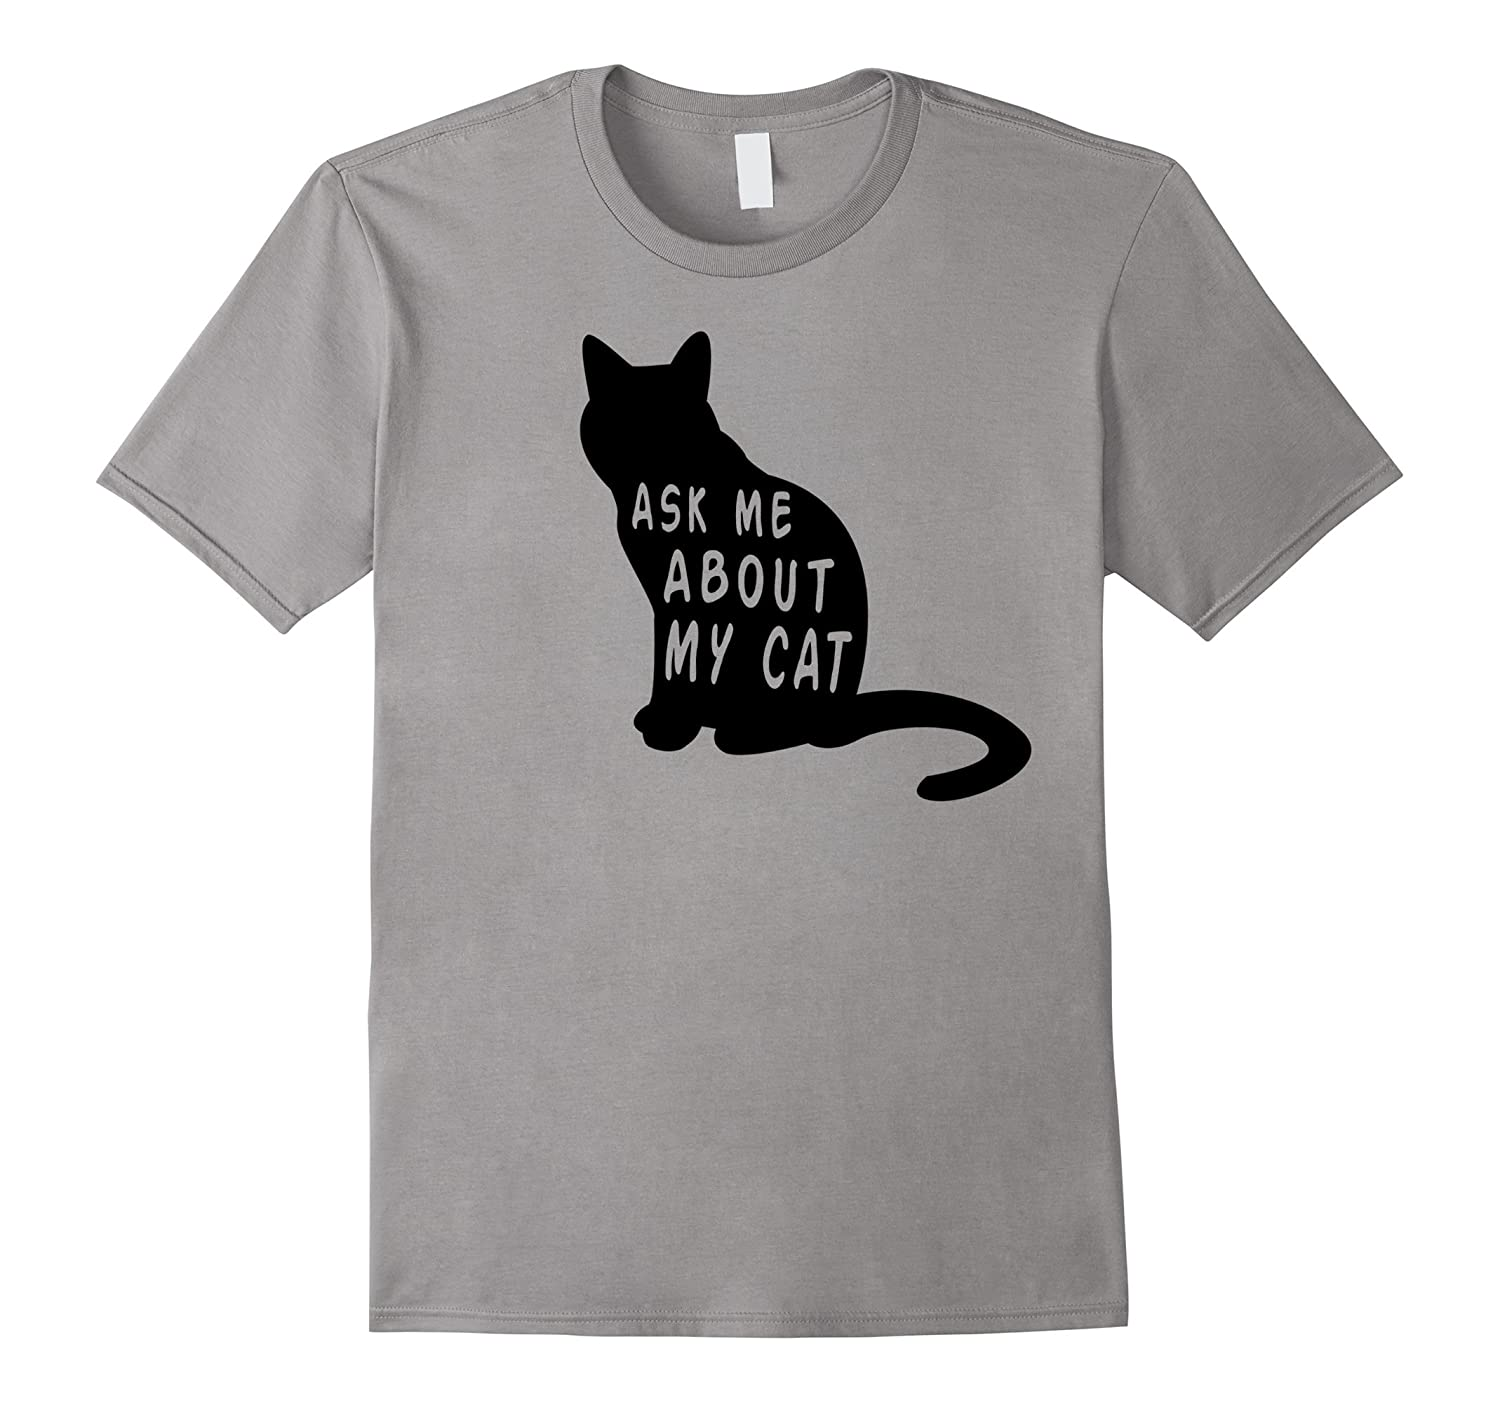 Ask Me About My Cat Funny T-Shirt Tee Shirt Gift Idea Kitten-CL